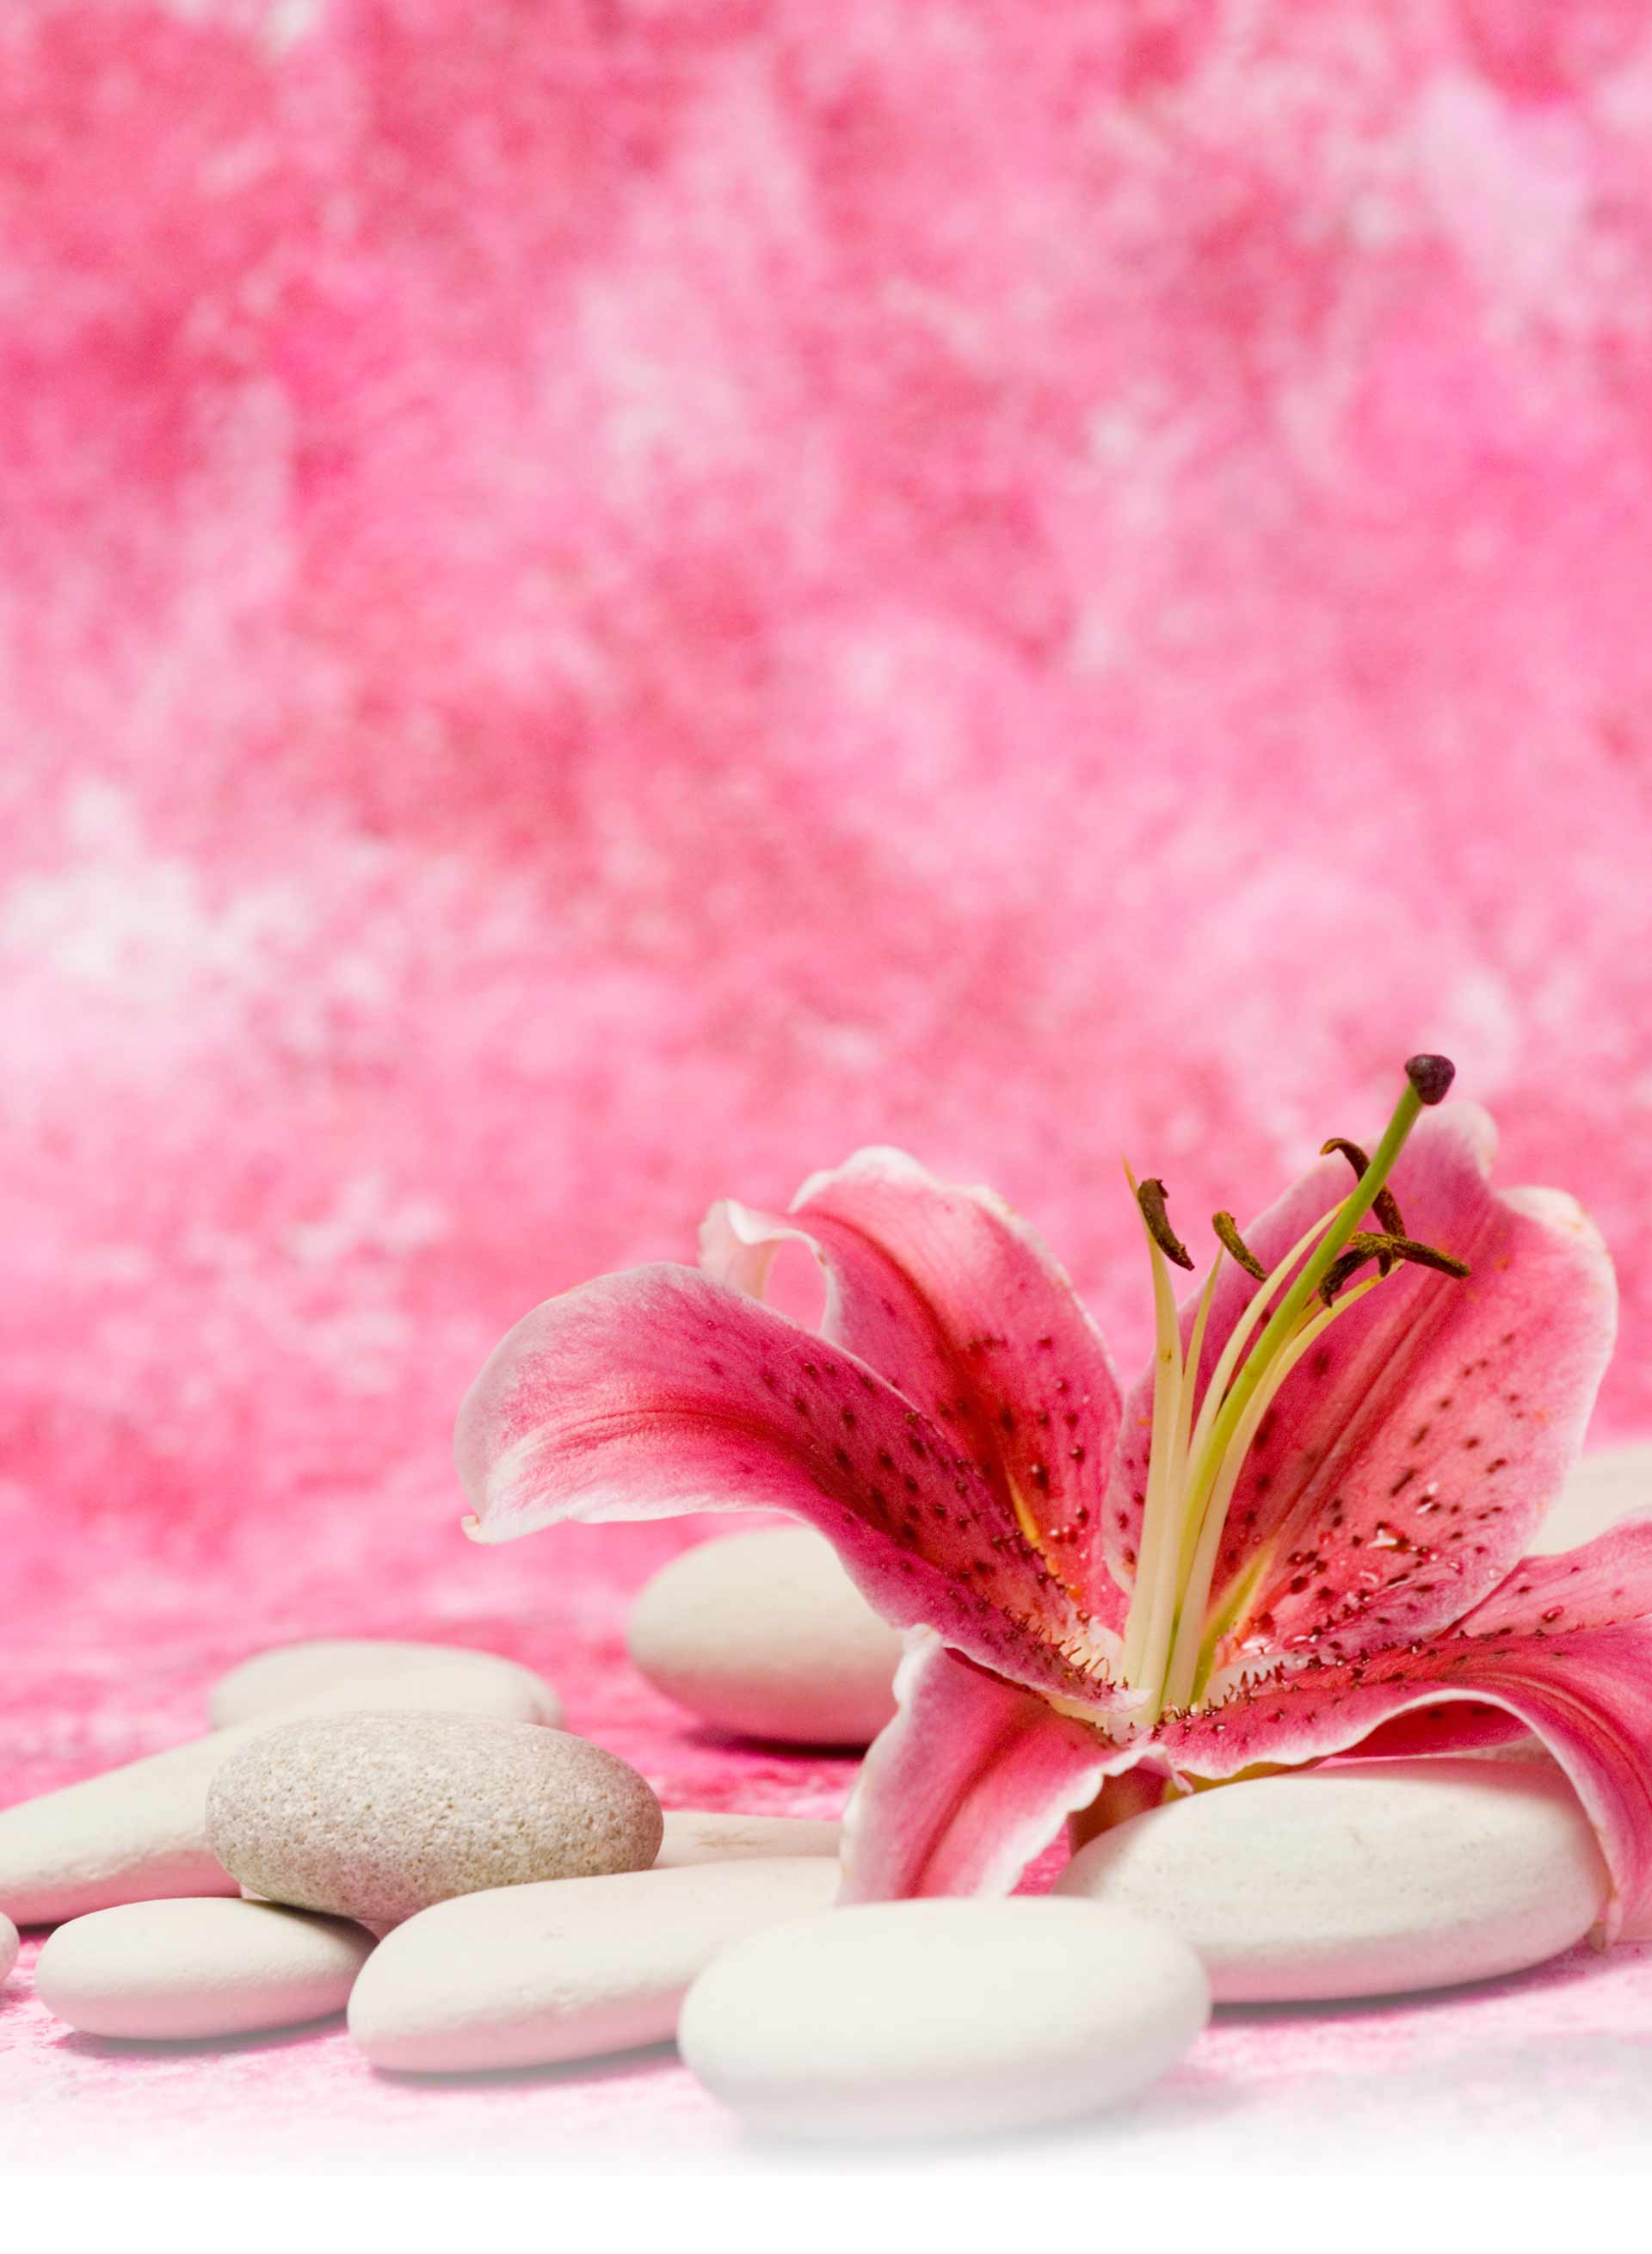 beauty salon wallpaper backgrounds - photo #36